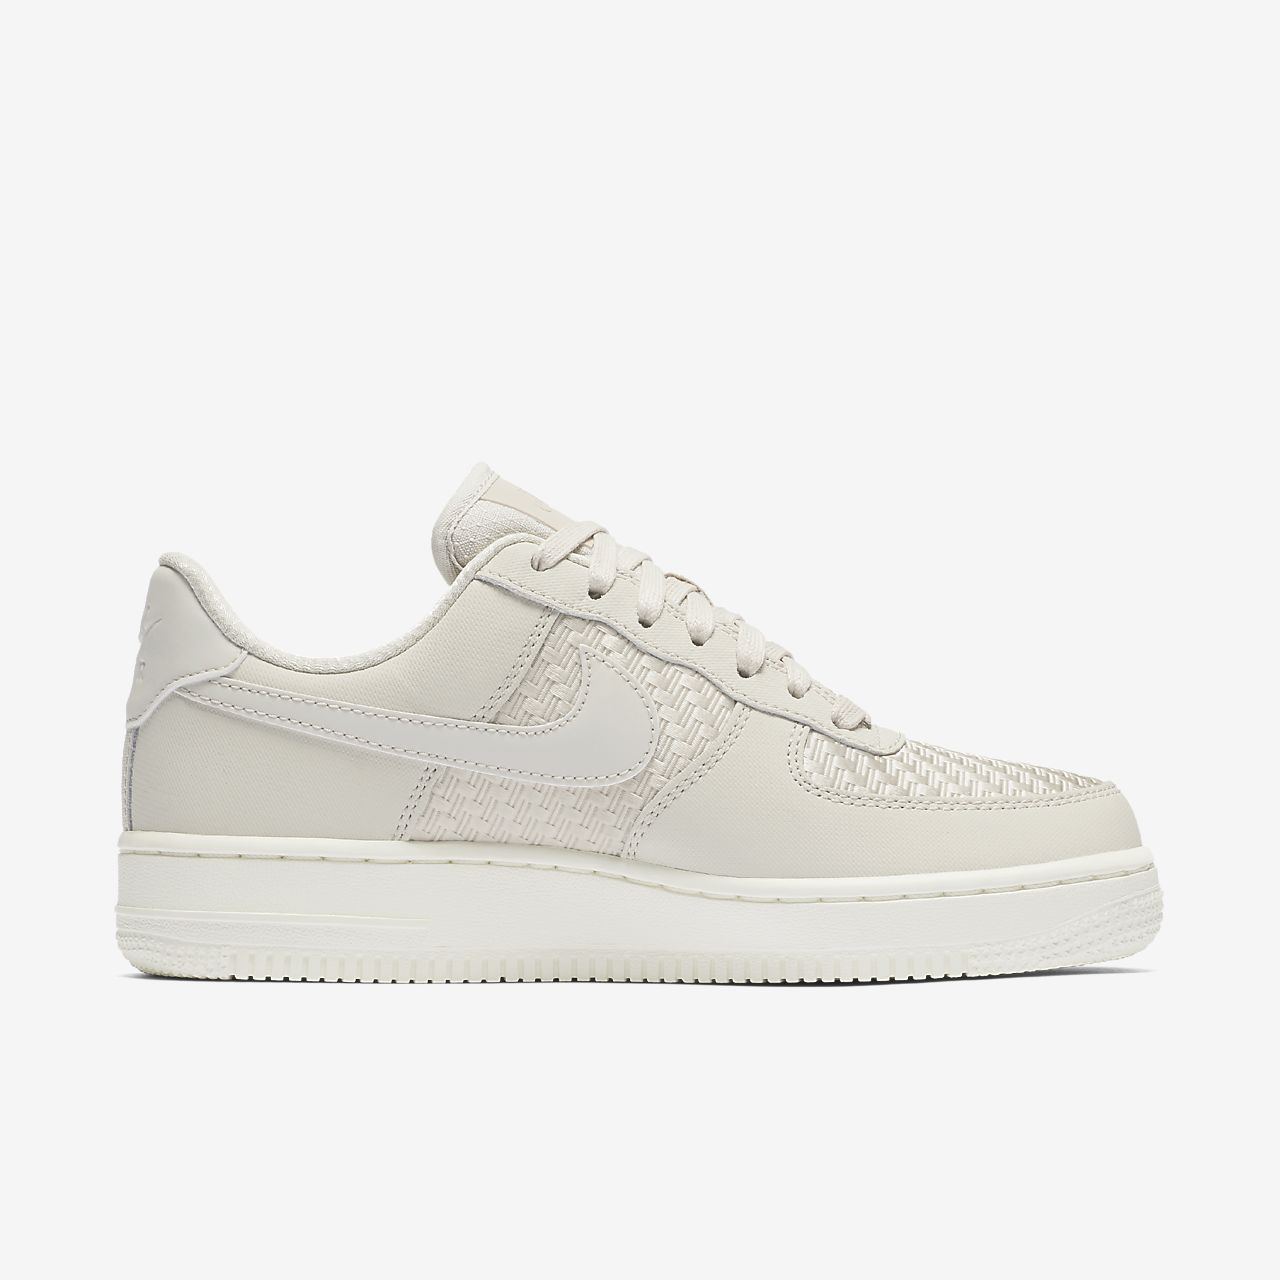 nike air force 1 07 femme,Nike Baskets Femme Air Force 1 07